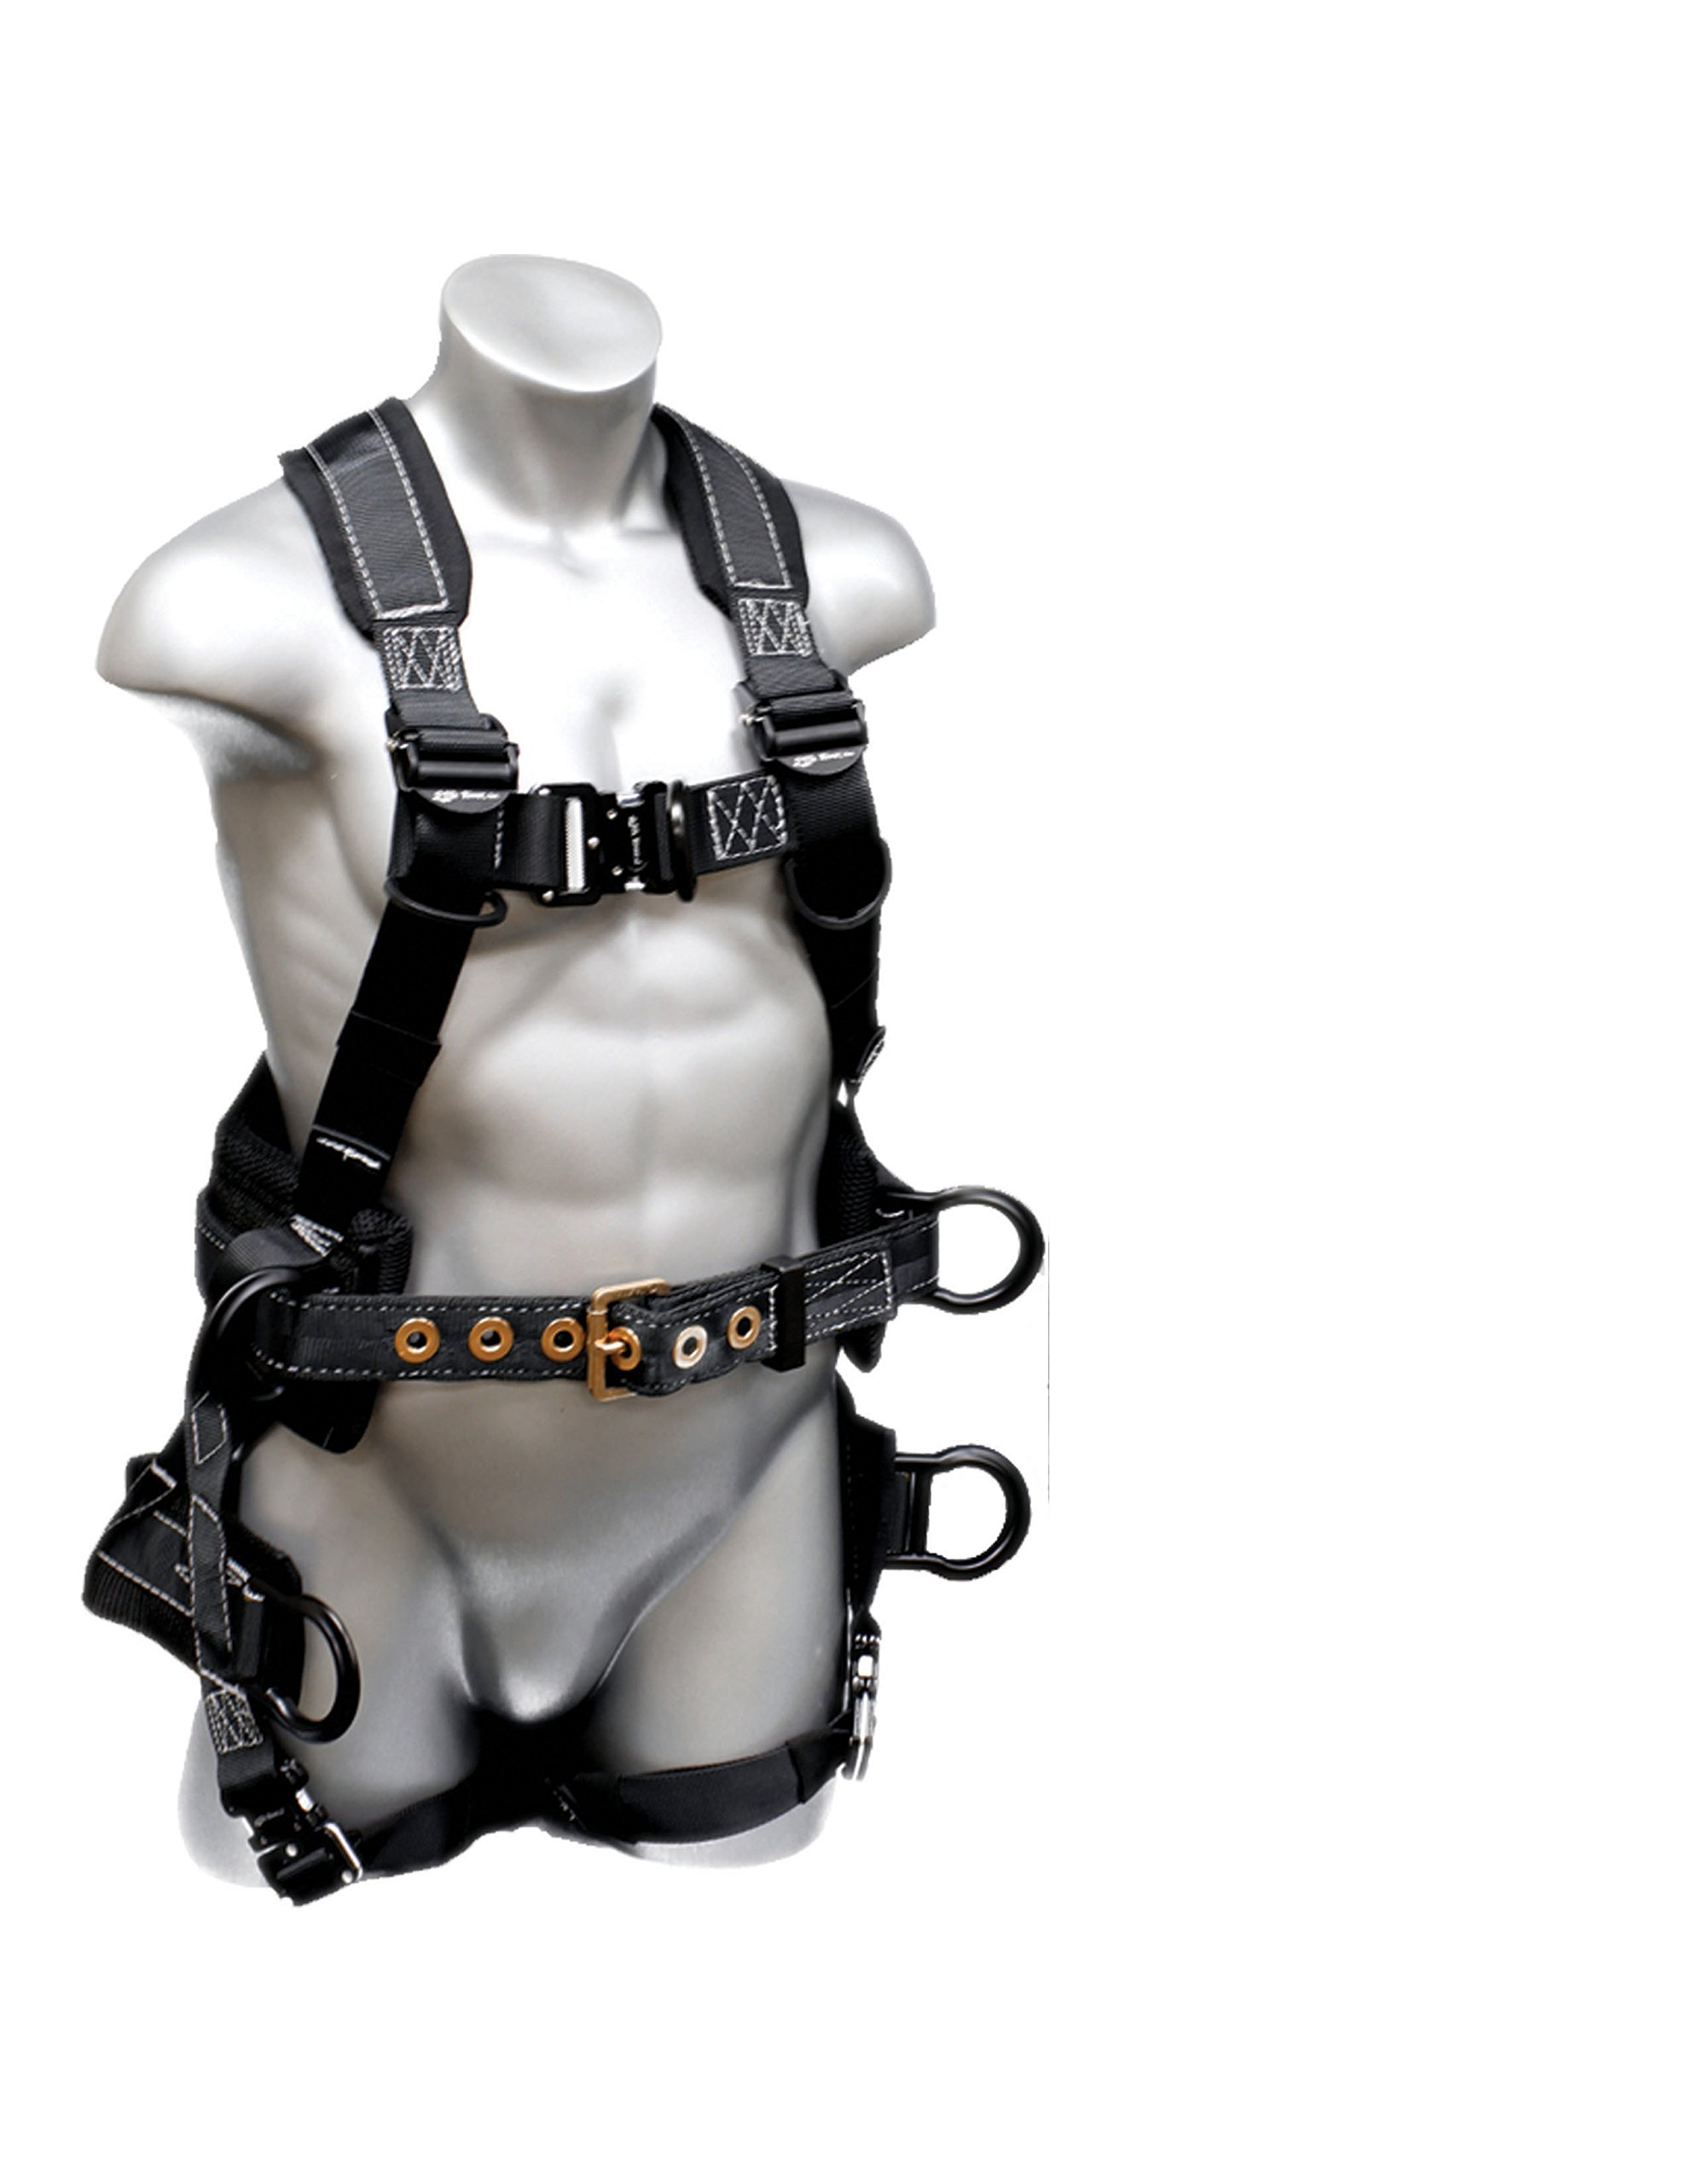 Elk River 67603 Polyester/Nylon Peregrine Platinum Series 6 D-Ring Harness with Quick-Connect Buckles, Large